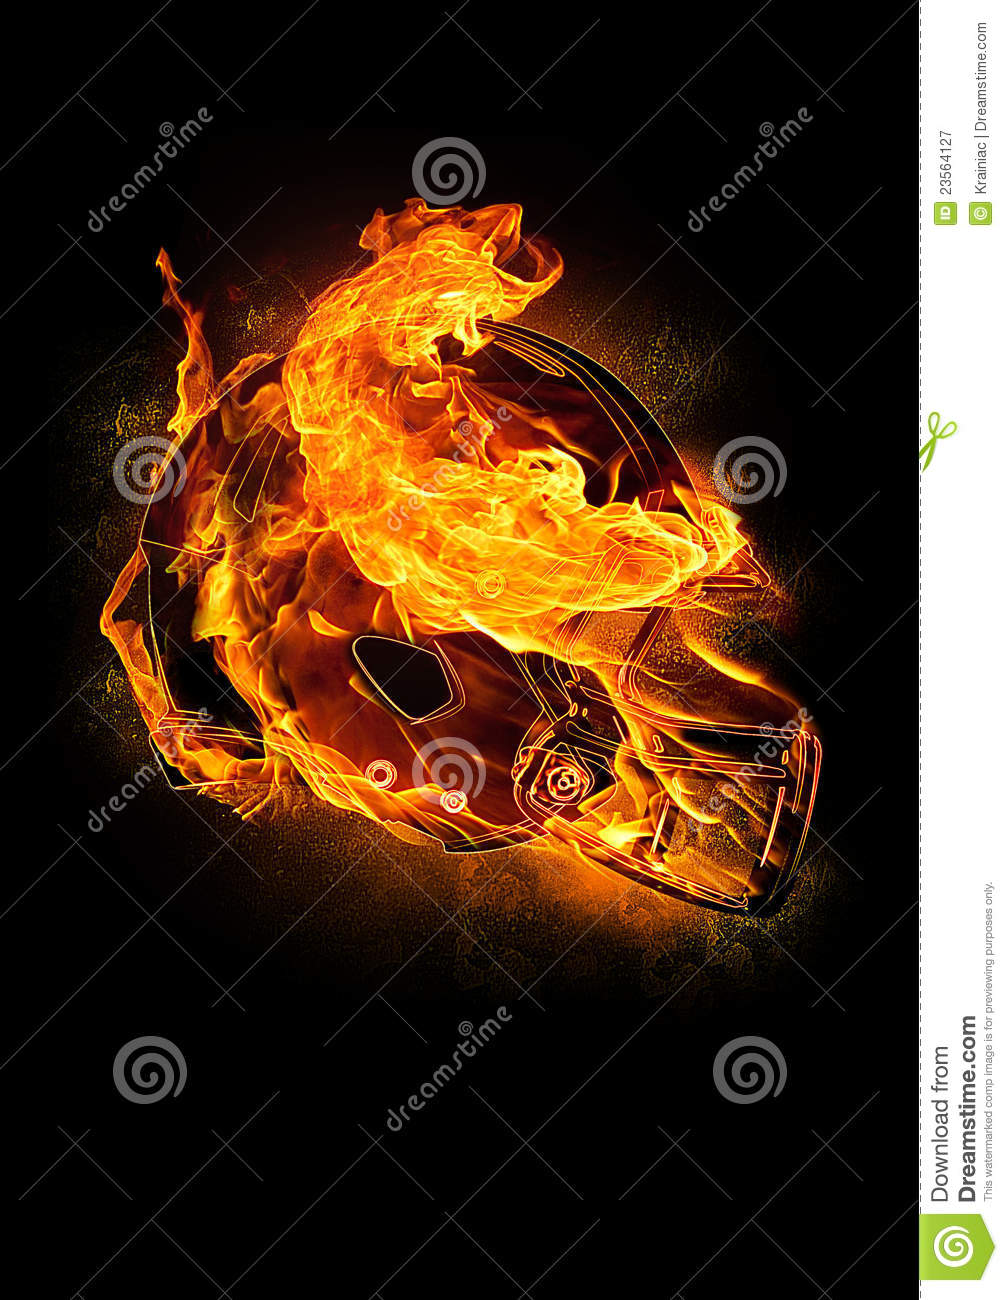 Fiery Football Helmet